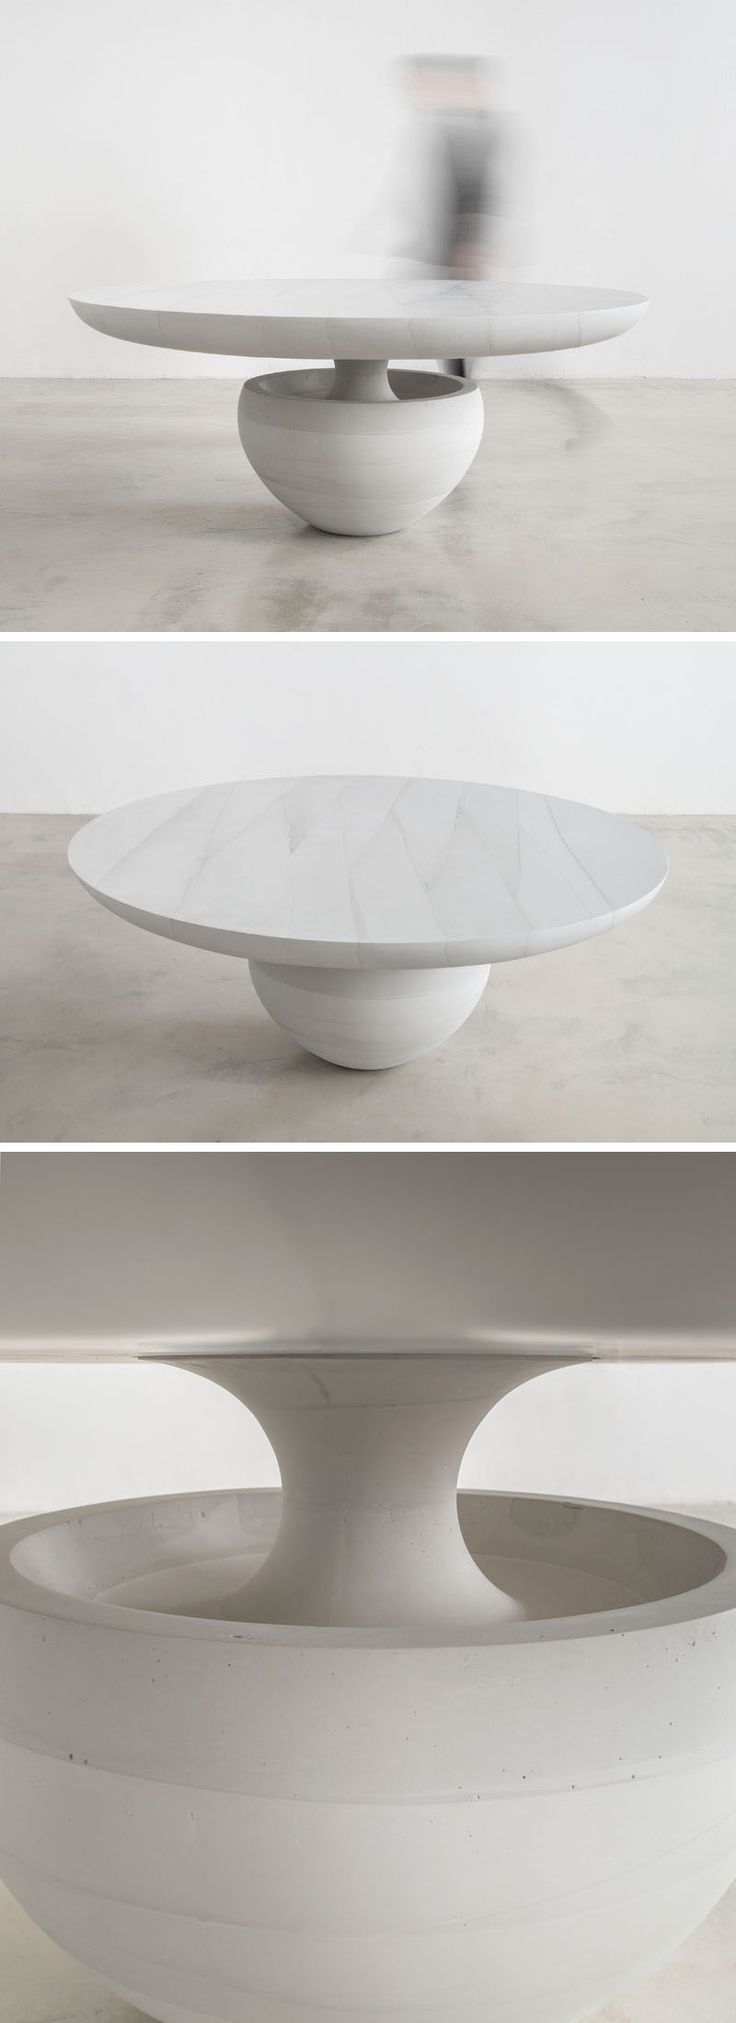 Famous Coffee Table Designers 17 Best Ideas About Concrete Coffee Table On Pinterest Outdoor